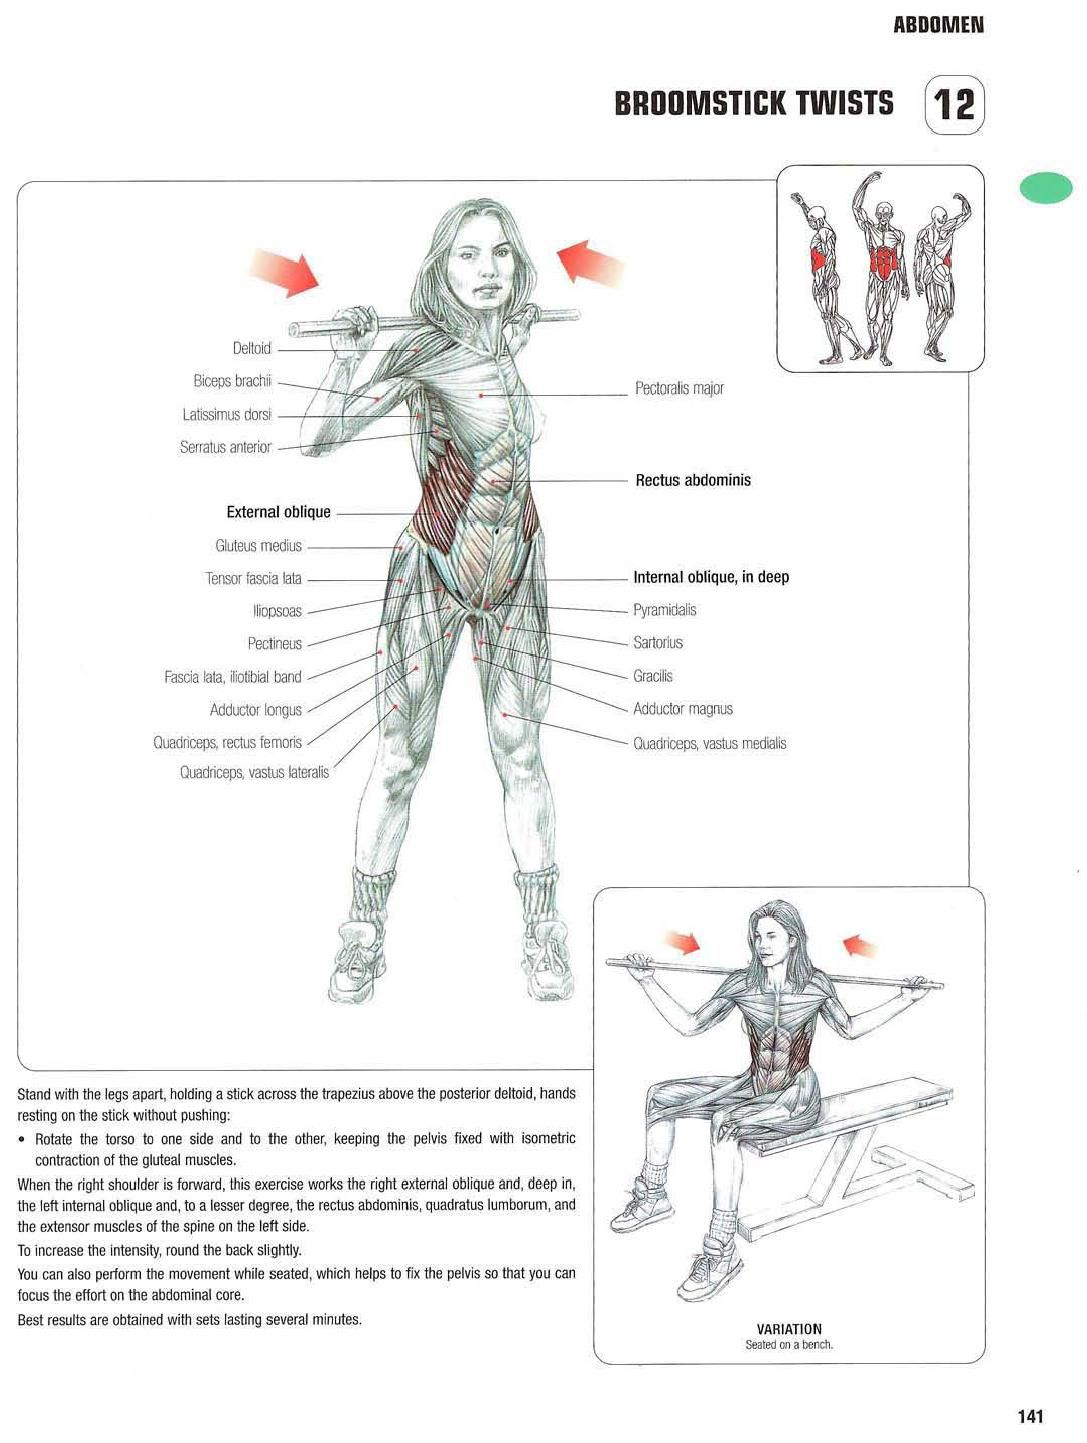 Strength training anatomy 12 Broomstick twists Abs, core, six pack ...